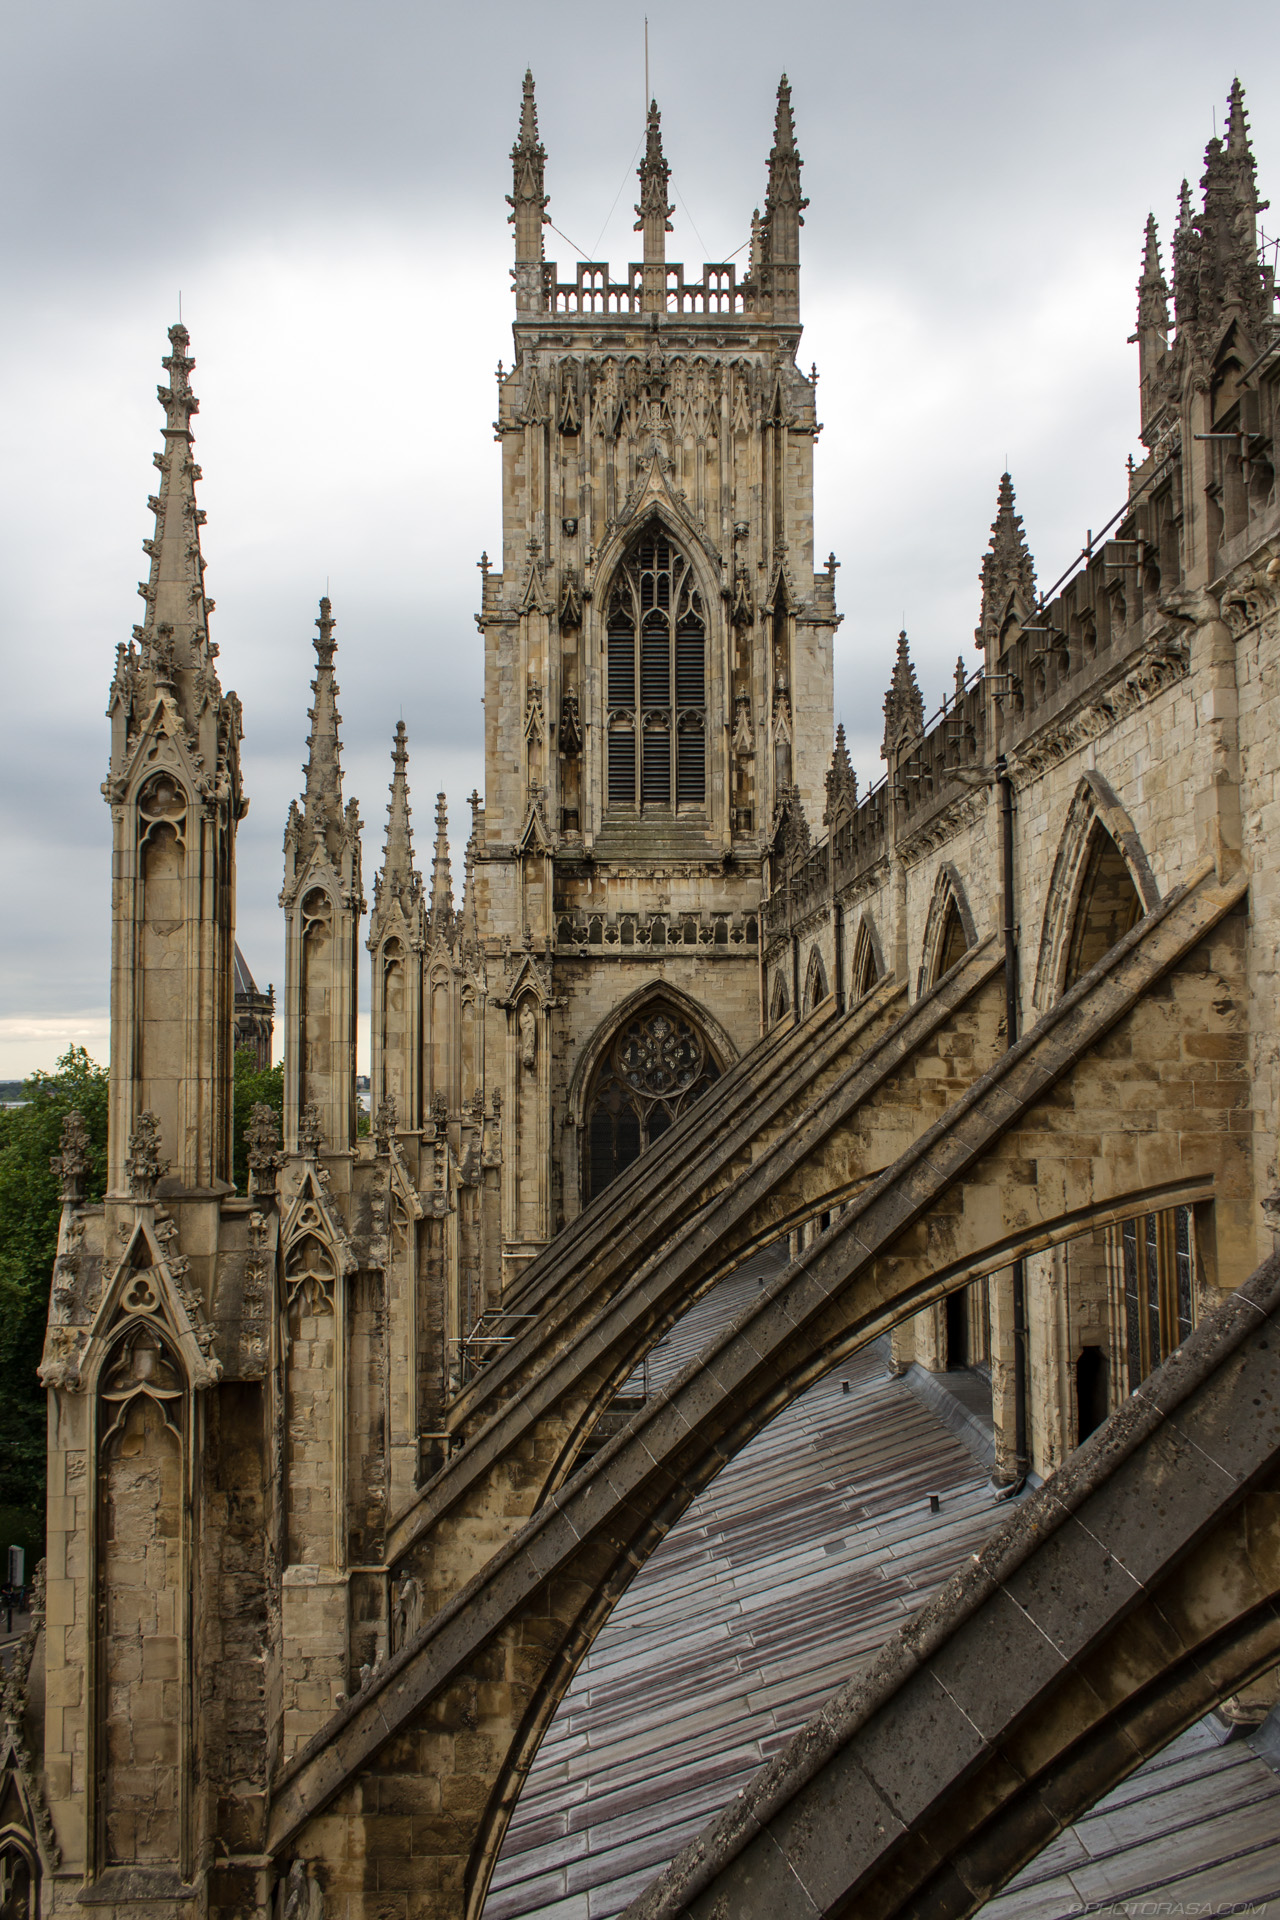 http://photorasa.com/places/yorkminster-cathedral/attachment/west-tower-from-the-roof/